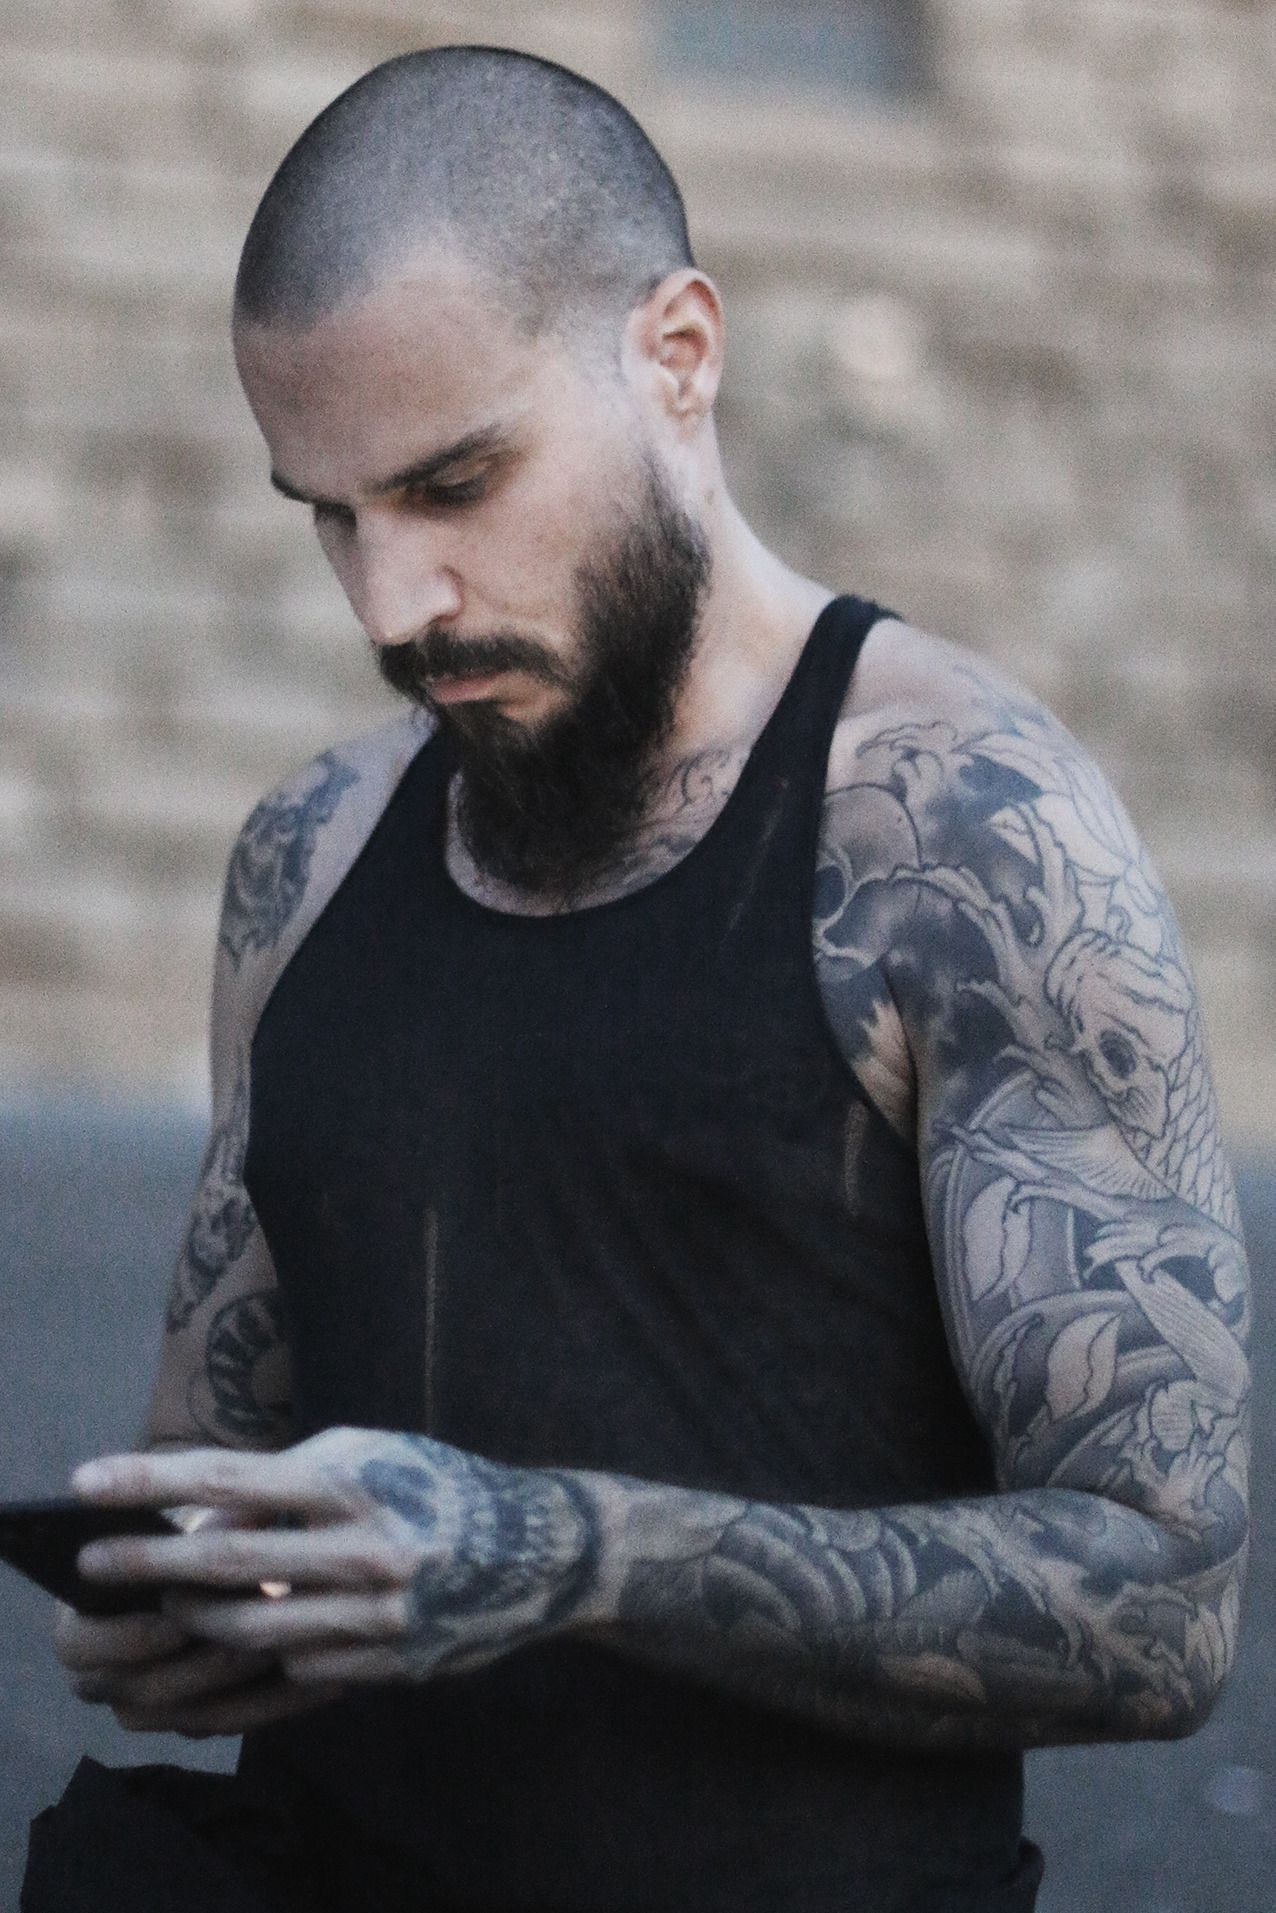 Fetish Barber Tattoed Bearded And Shaved Head